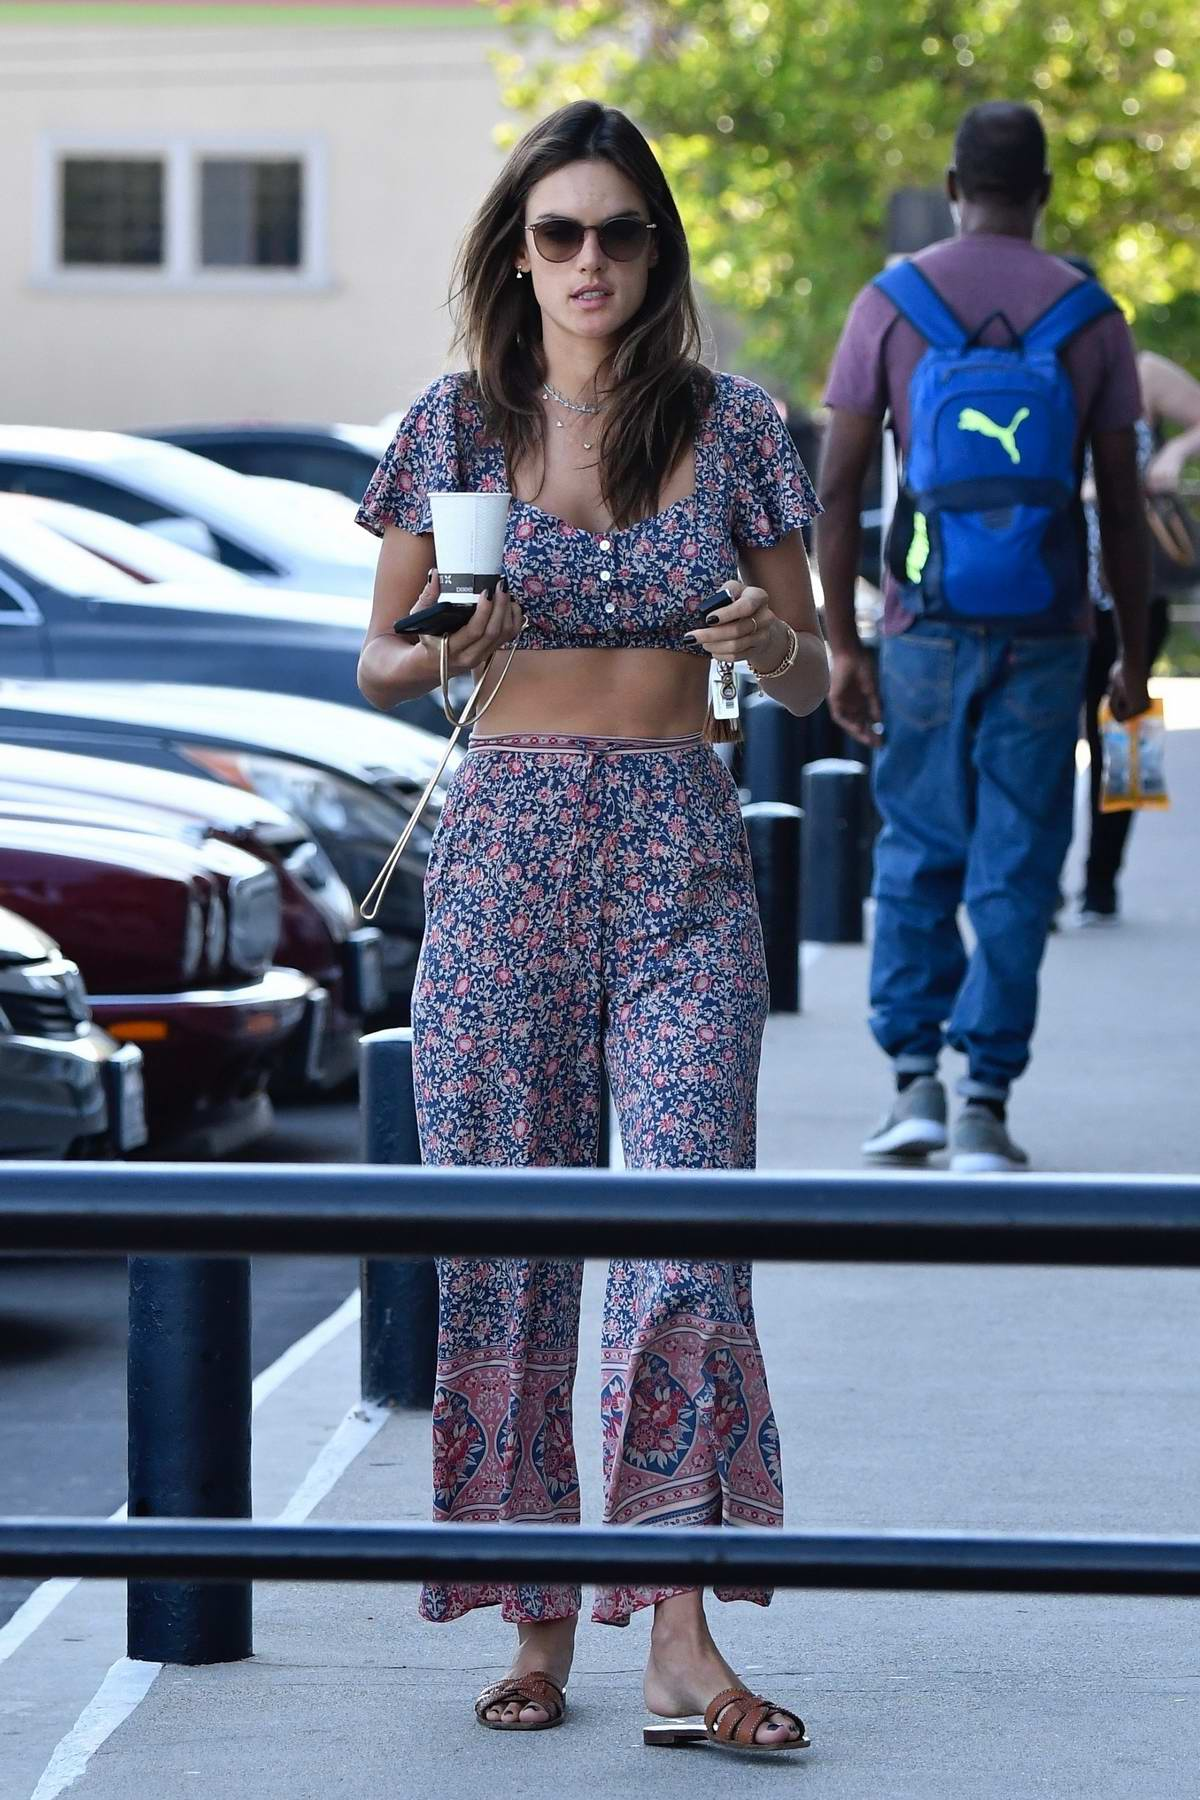 Alessandra Ambrosio looks great in a matching floral print outfit while running errands in Los Angeles